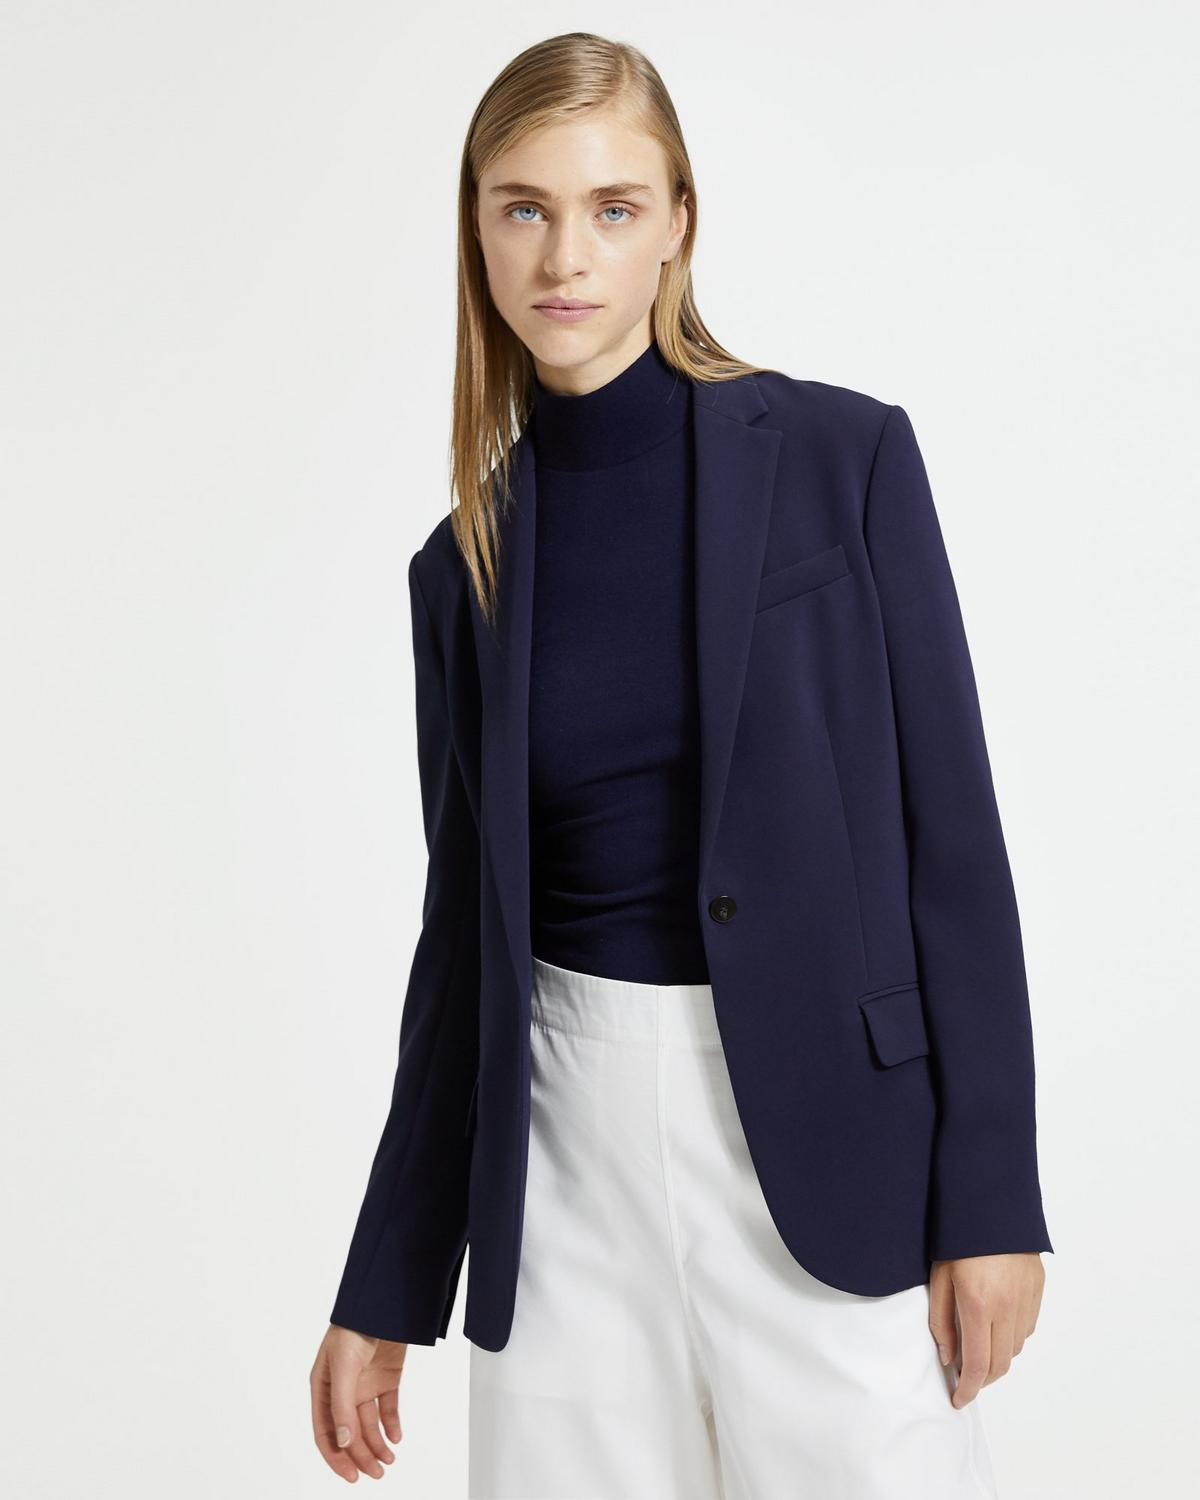 Theory Navy Blazer.jpeg